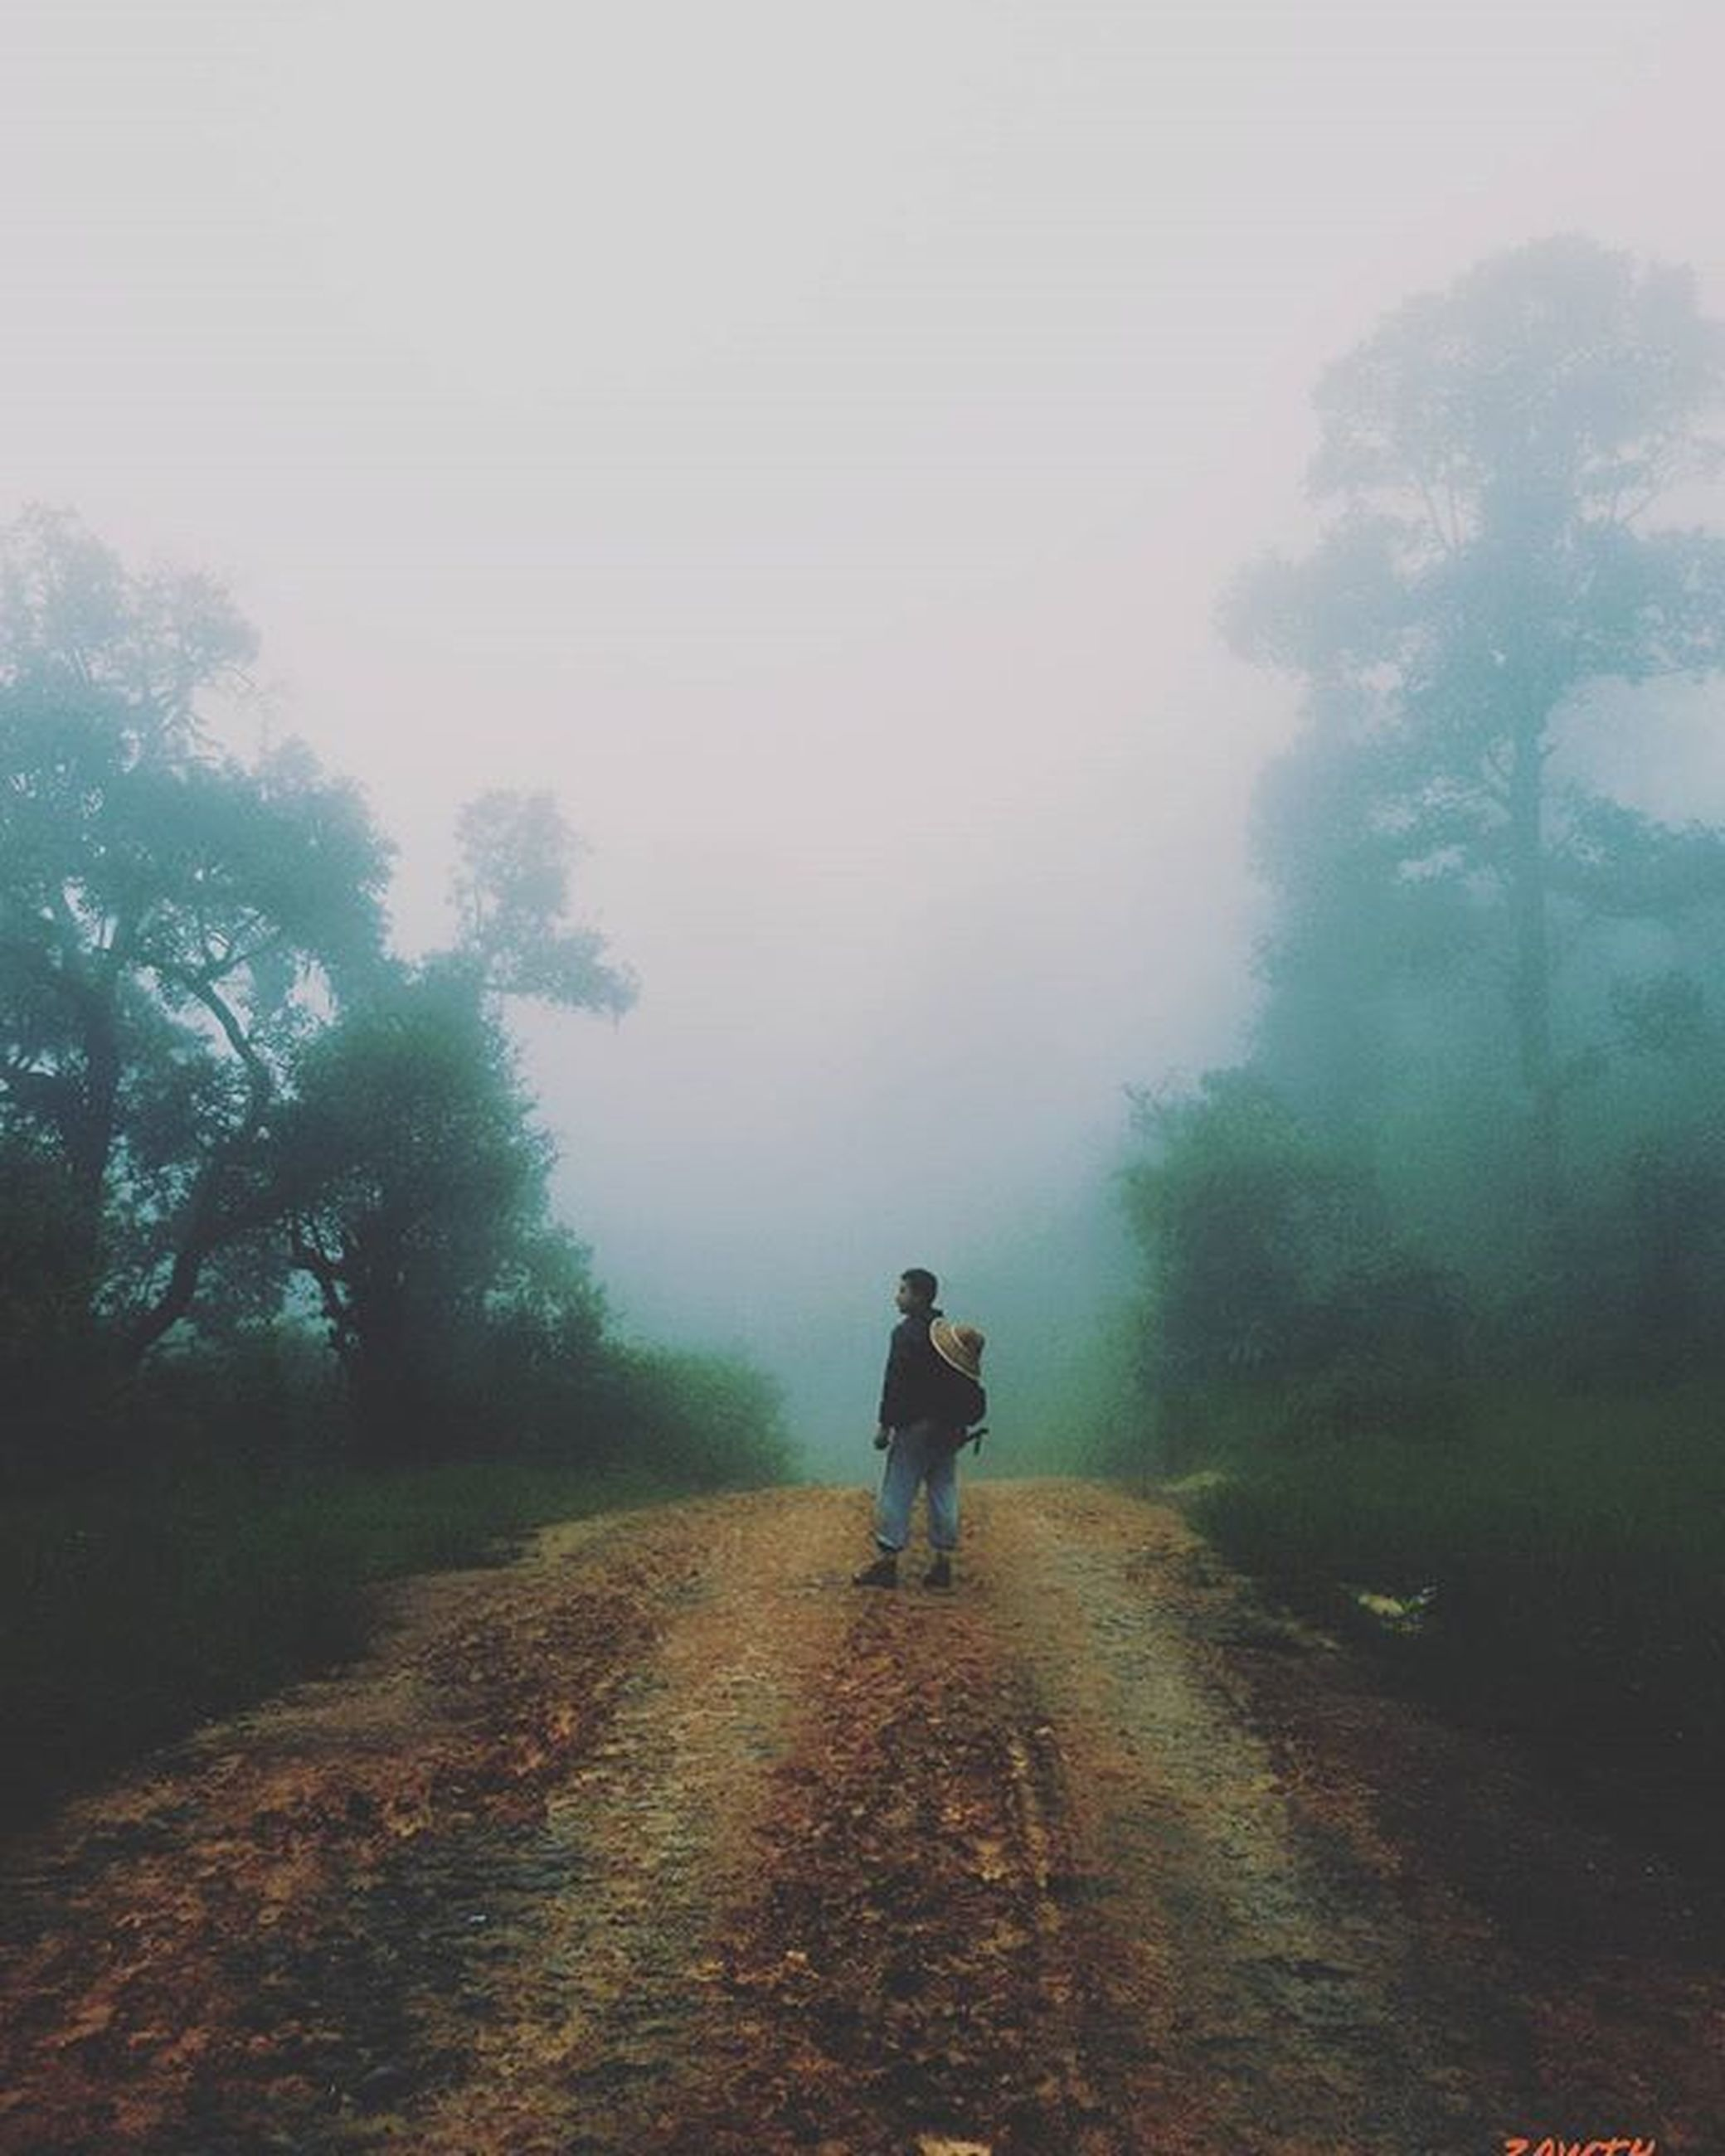 rear view, full length, the way forward, tree, lifestyles, walking, men, leisure activity, dirt road, fog, diminishing perspective, nature, tranquility, landscape, tranquil scene, vanishing point, sky, transportation